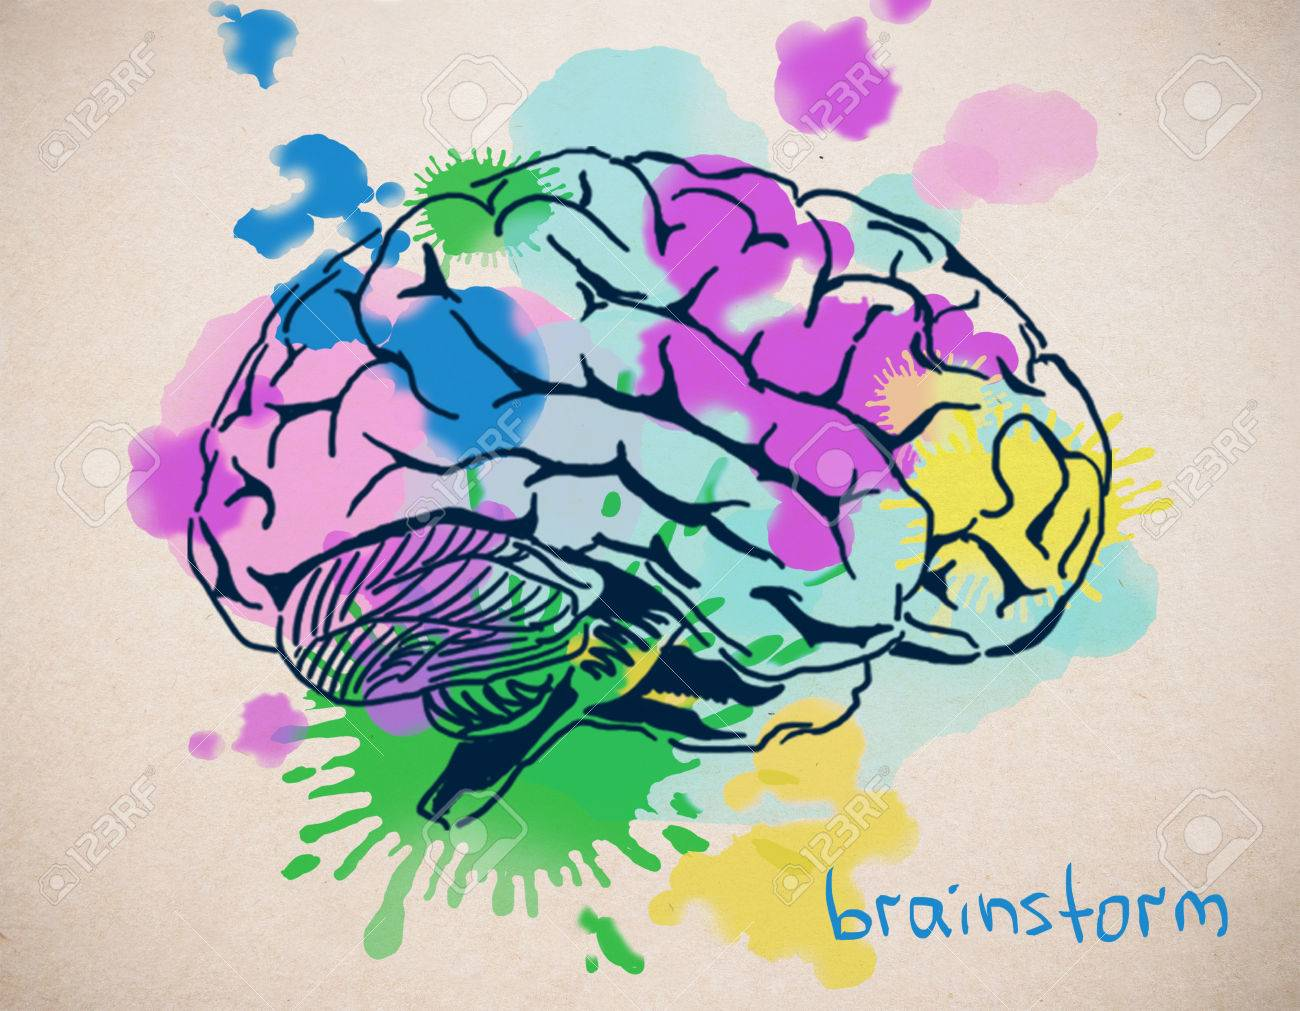 1300x1011 Close Up Of Creative Colorful Human Brain Drawing On Light